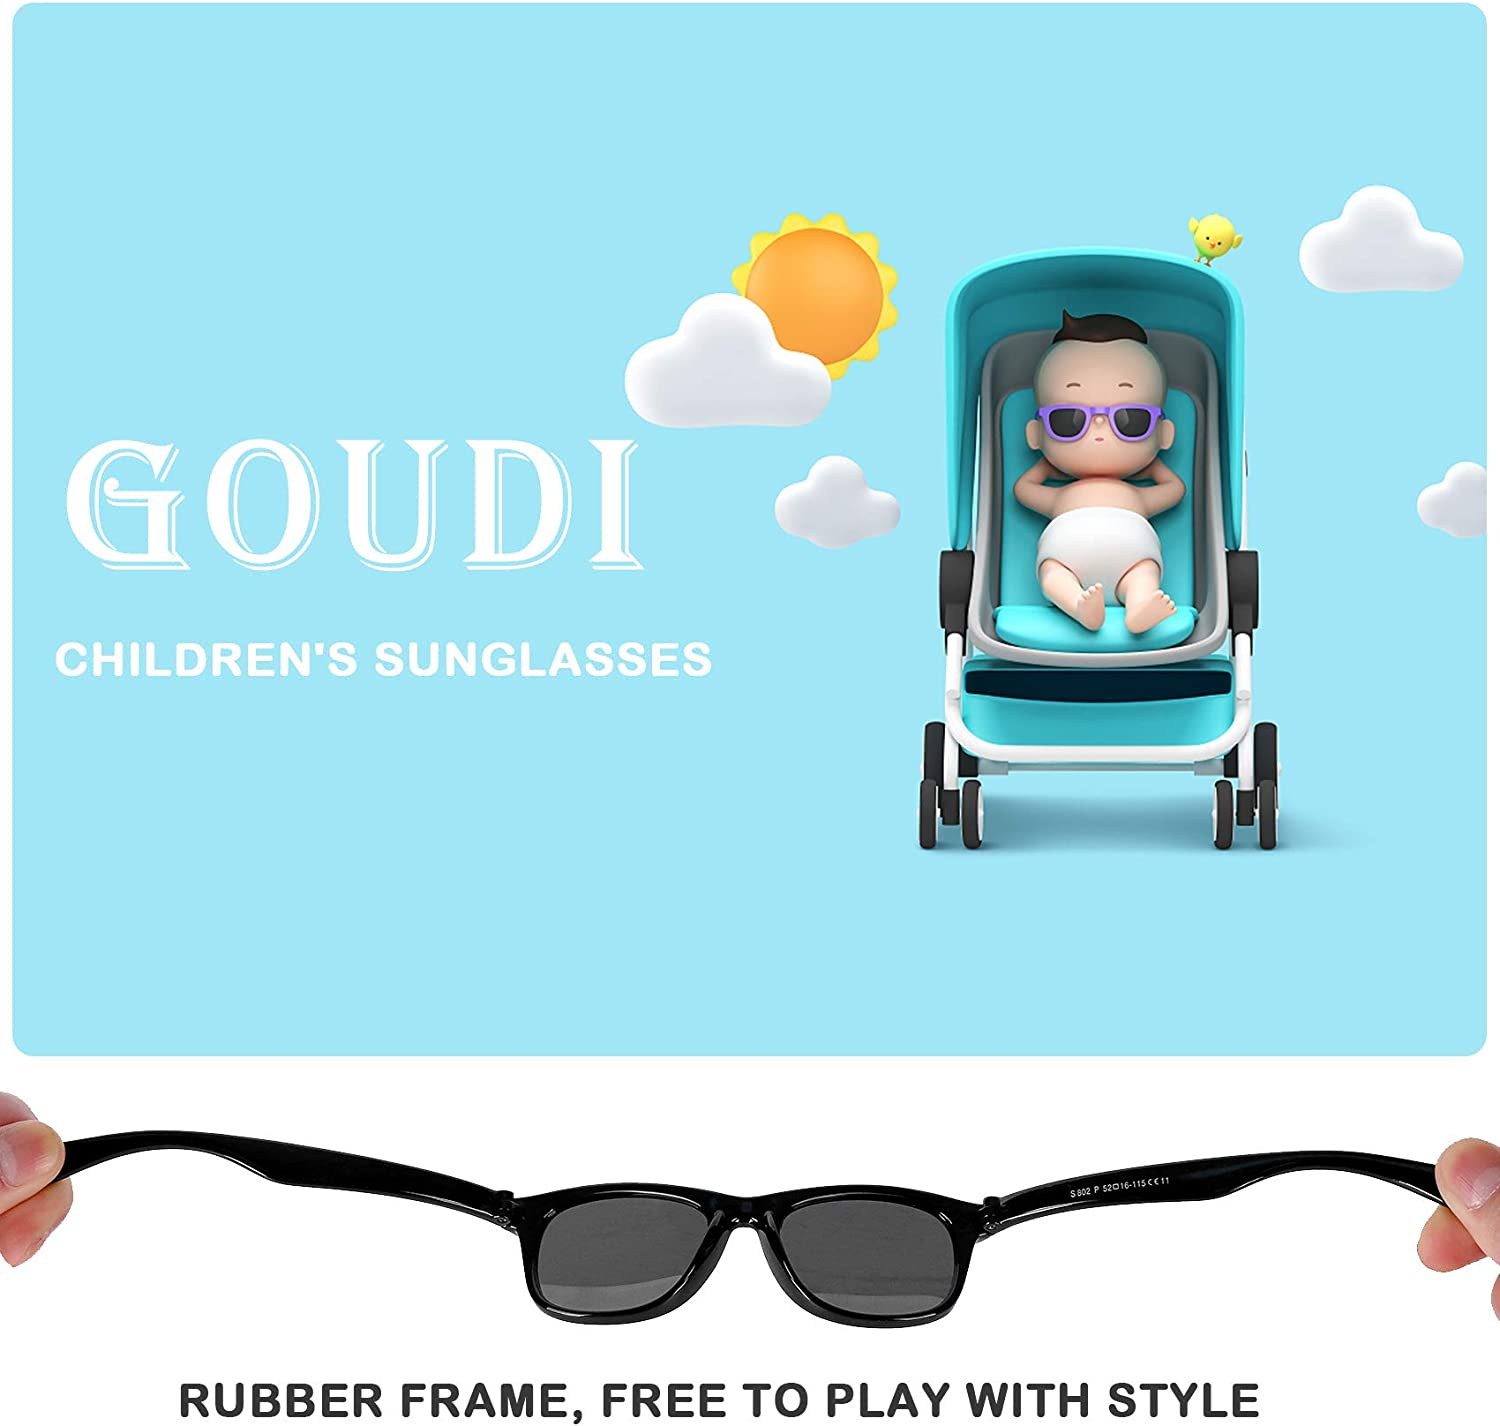 Kids Polarized Boys Girls Sunglasses-GOUDI Rubber Fashion For Children Sports Sunglasses Rubber Frame Age 2-10